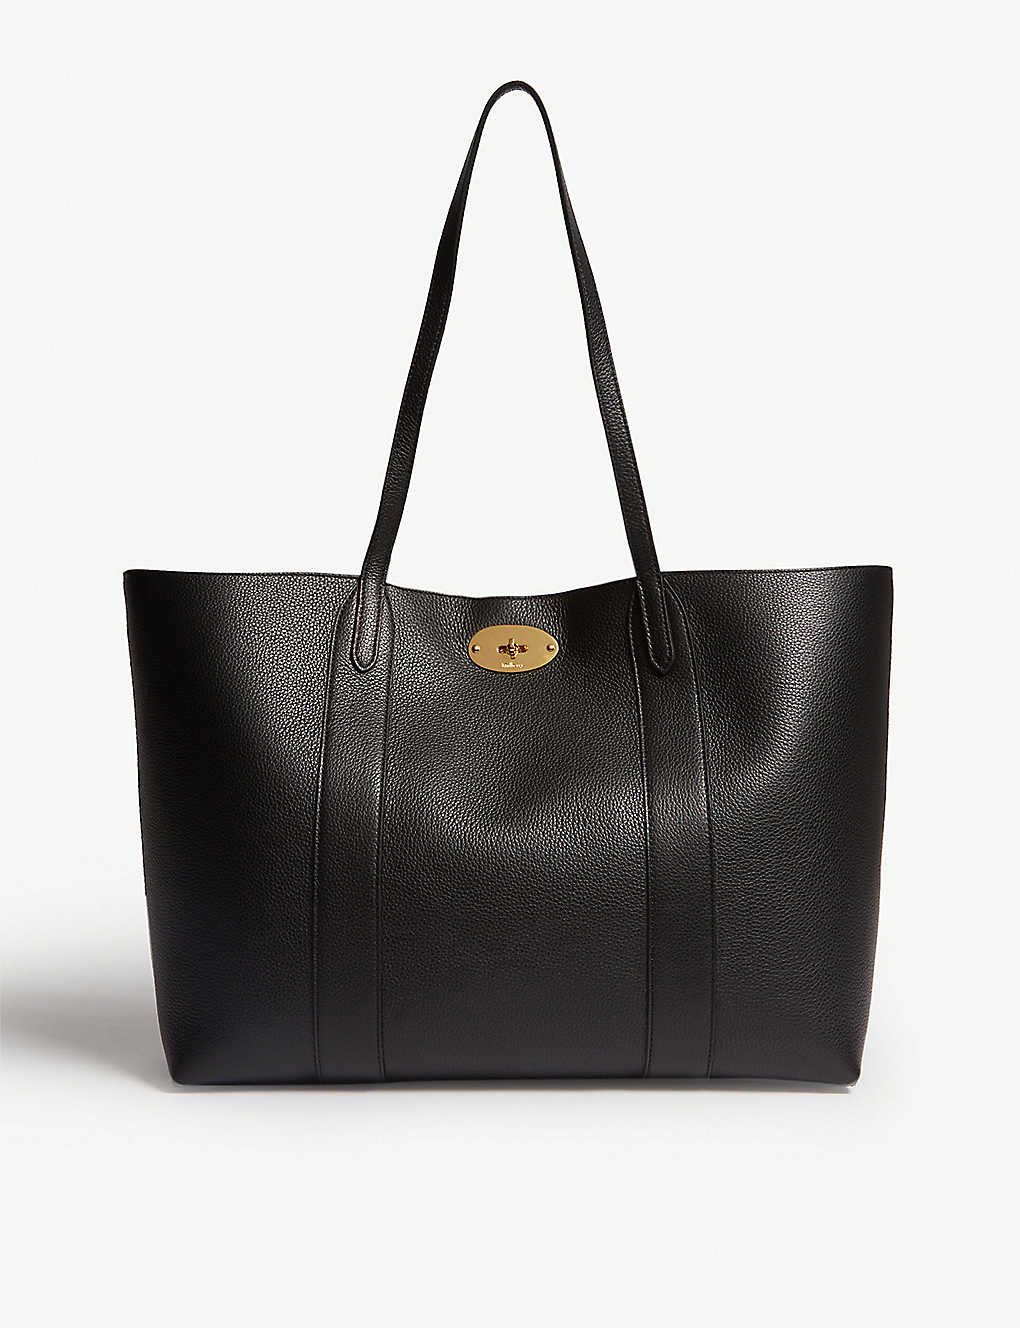 7442f4abf3 MULBERRY - Bayswater grained leather tote | Selfridges.com